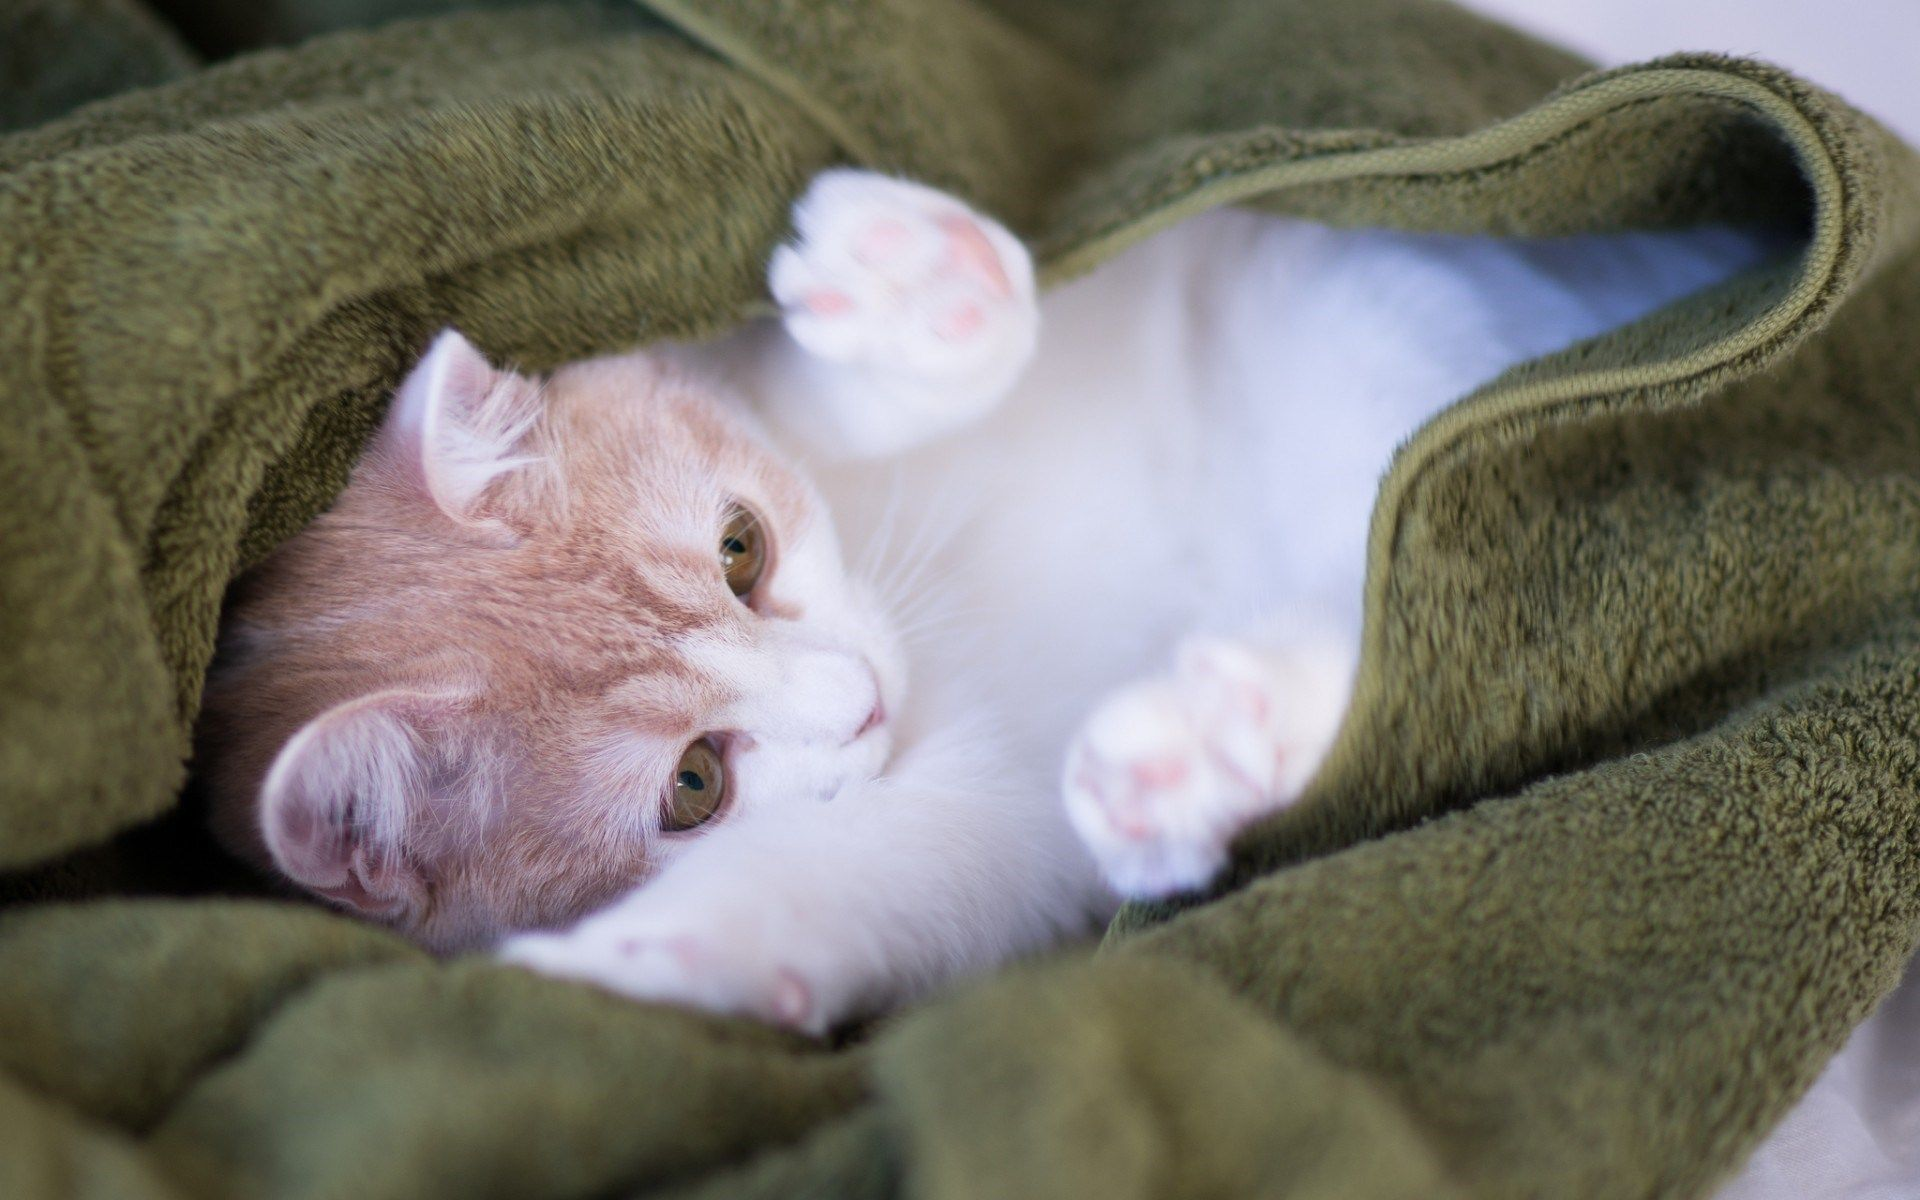 Sweet Cat One Reason That Kittens Sleep So Much Is Because A Growth Hormone Is Released Only During Sleep Cats Sleeping Kitten Cats And Kittens